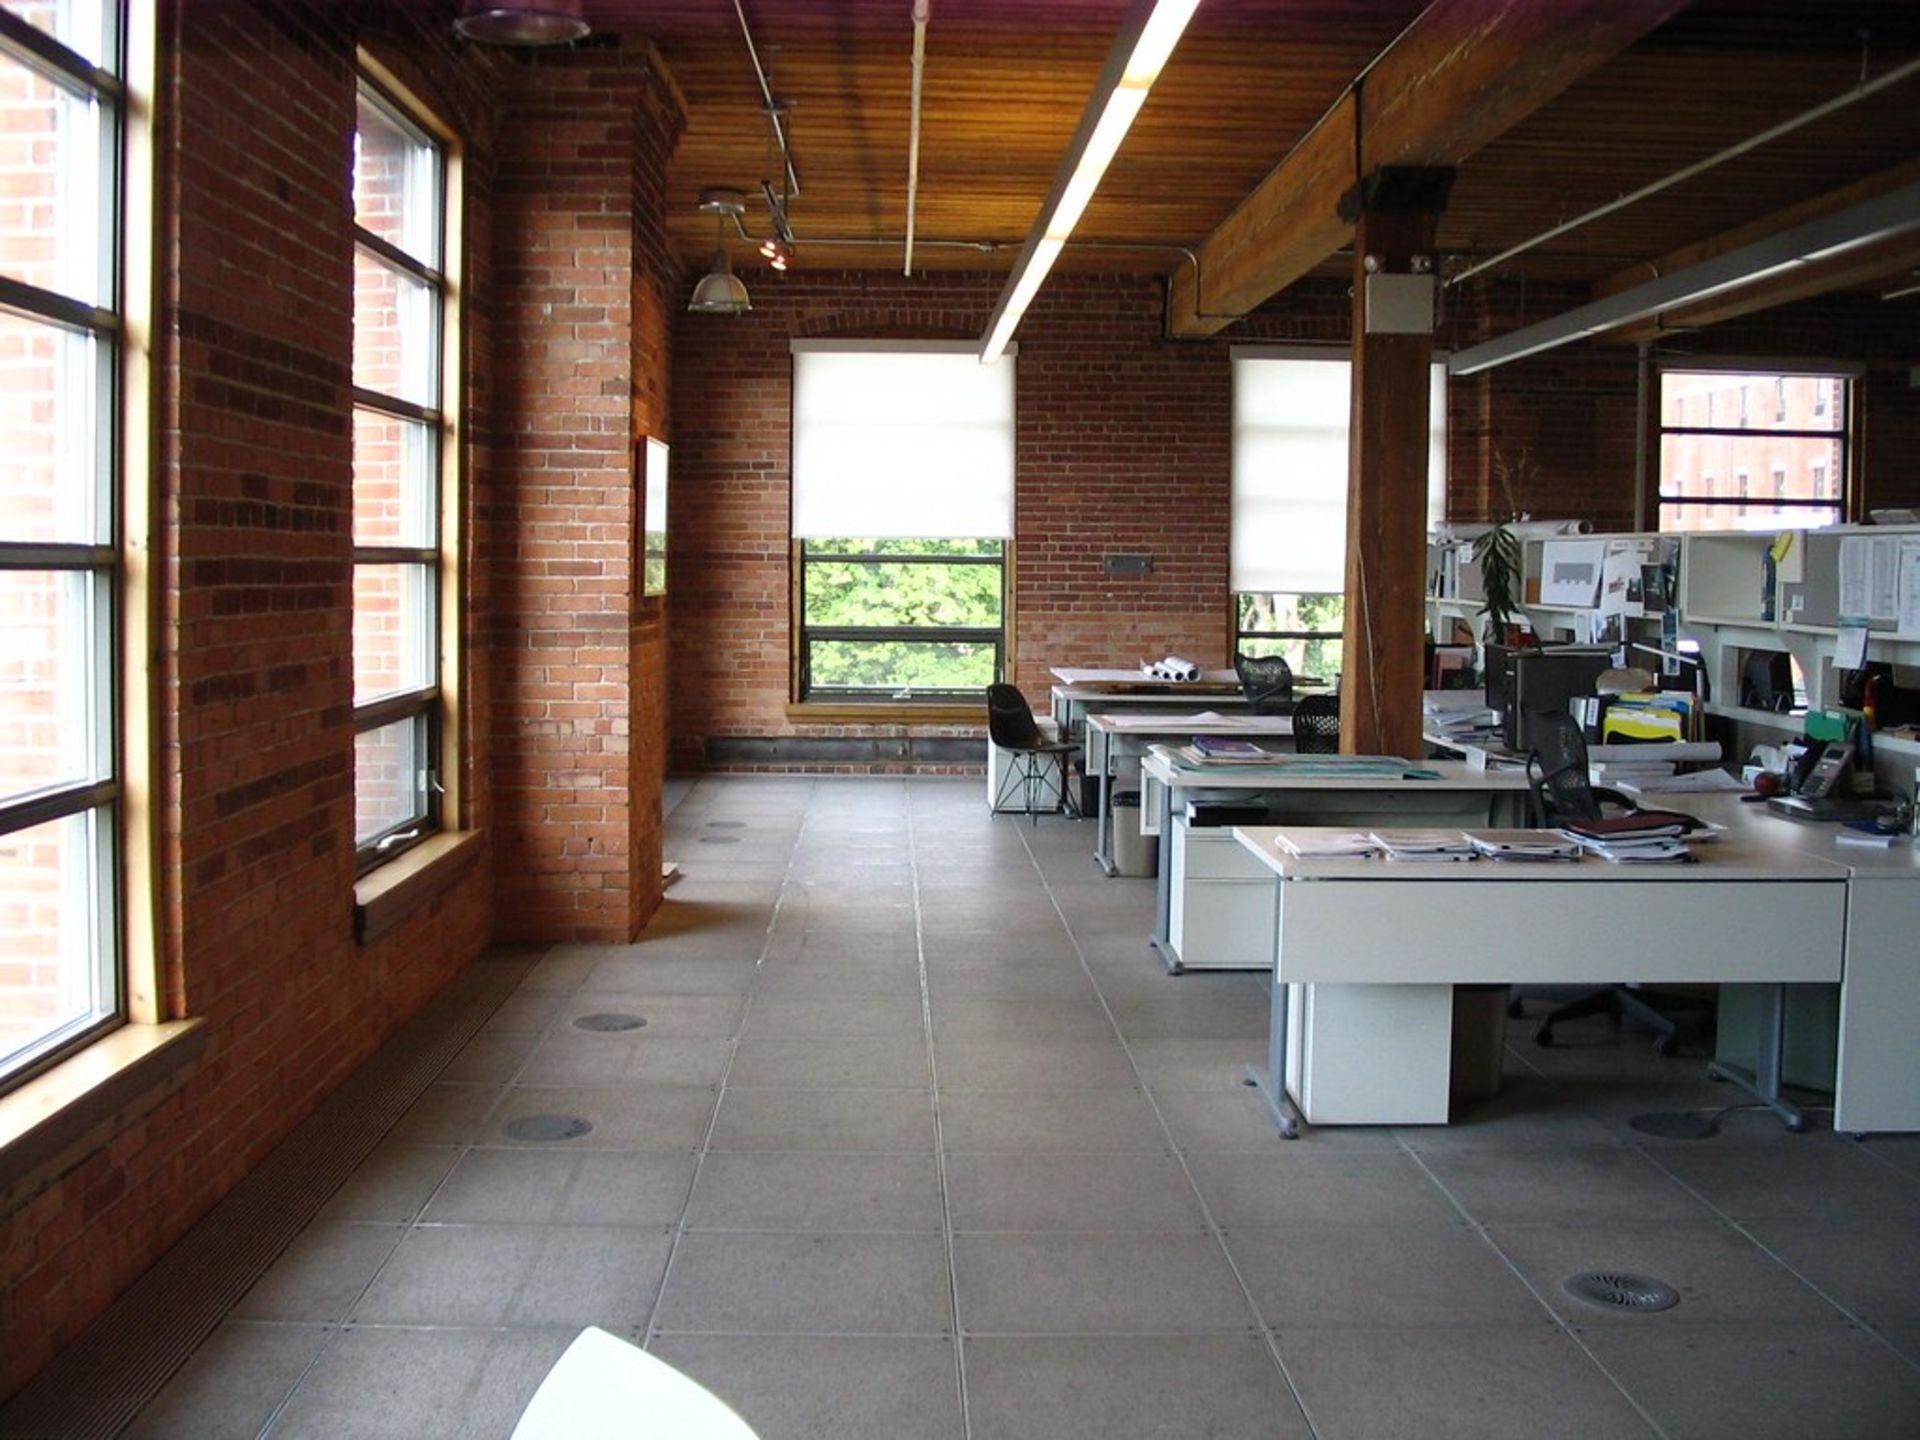 5 Tips to Renting Office or Retail Space